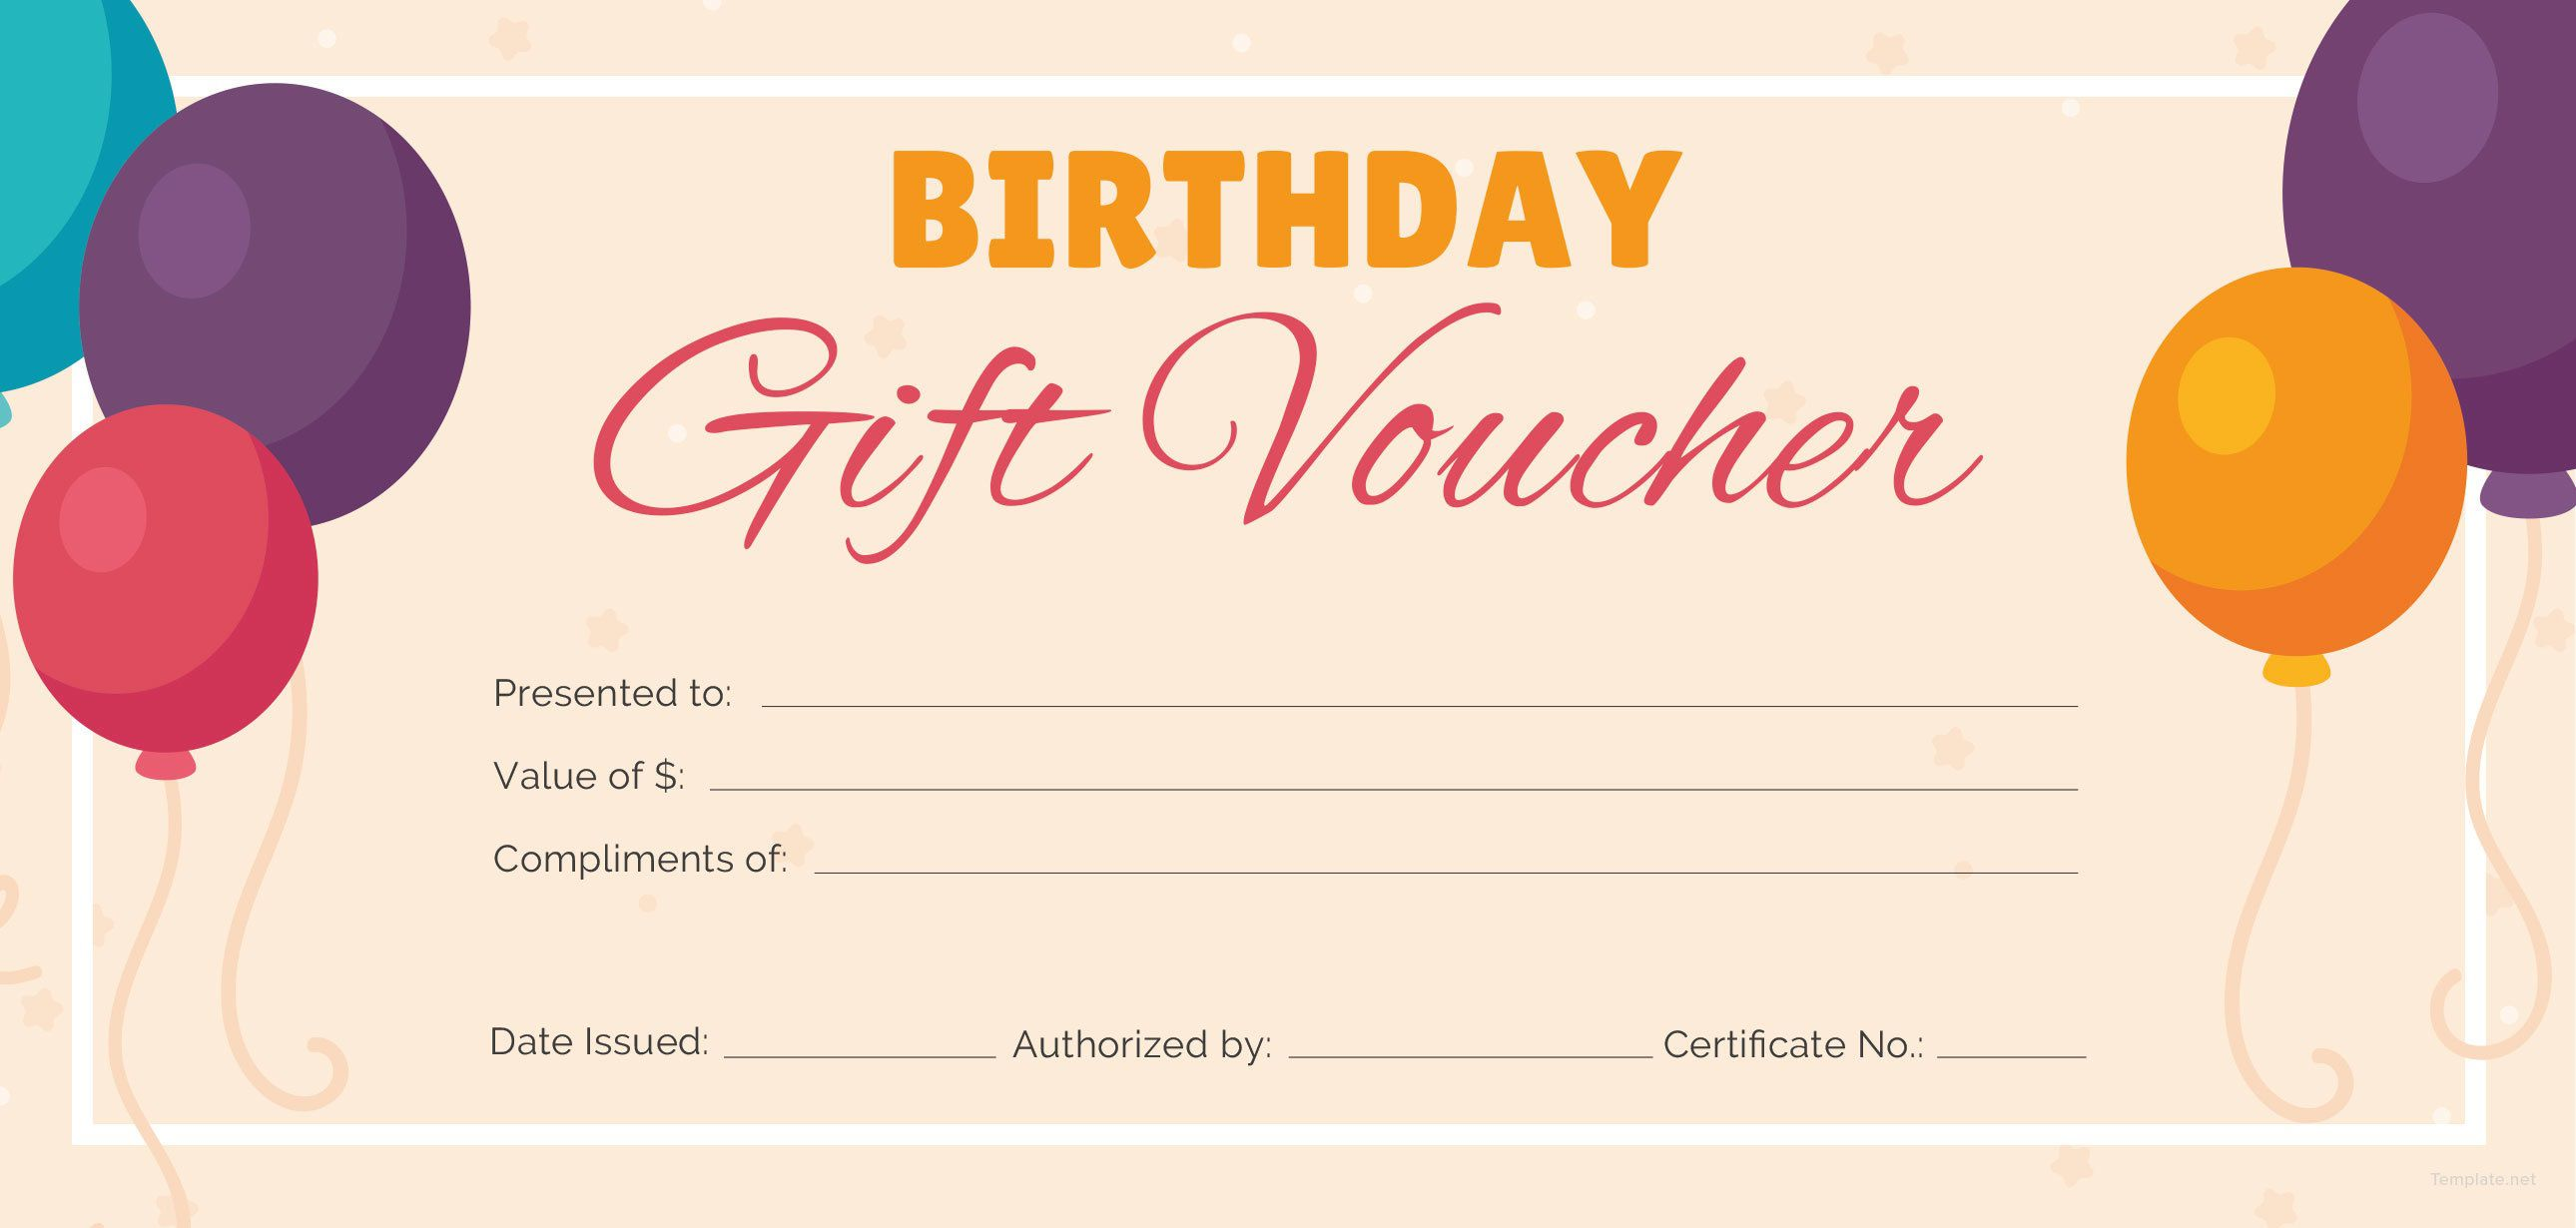 Free Birthday Gift Certificate Template Addictionary